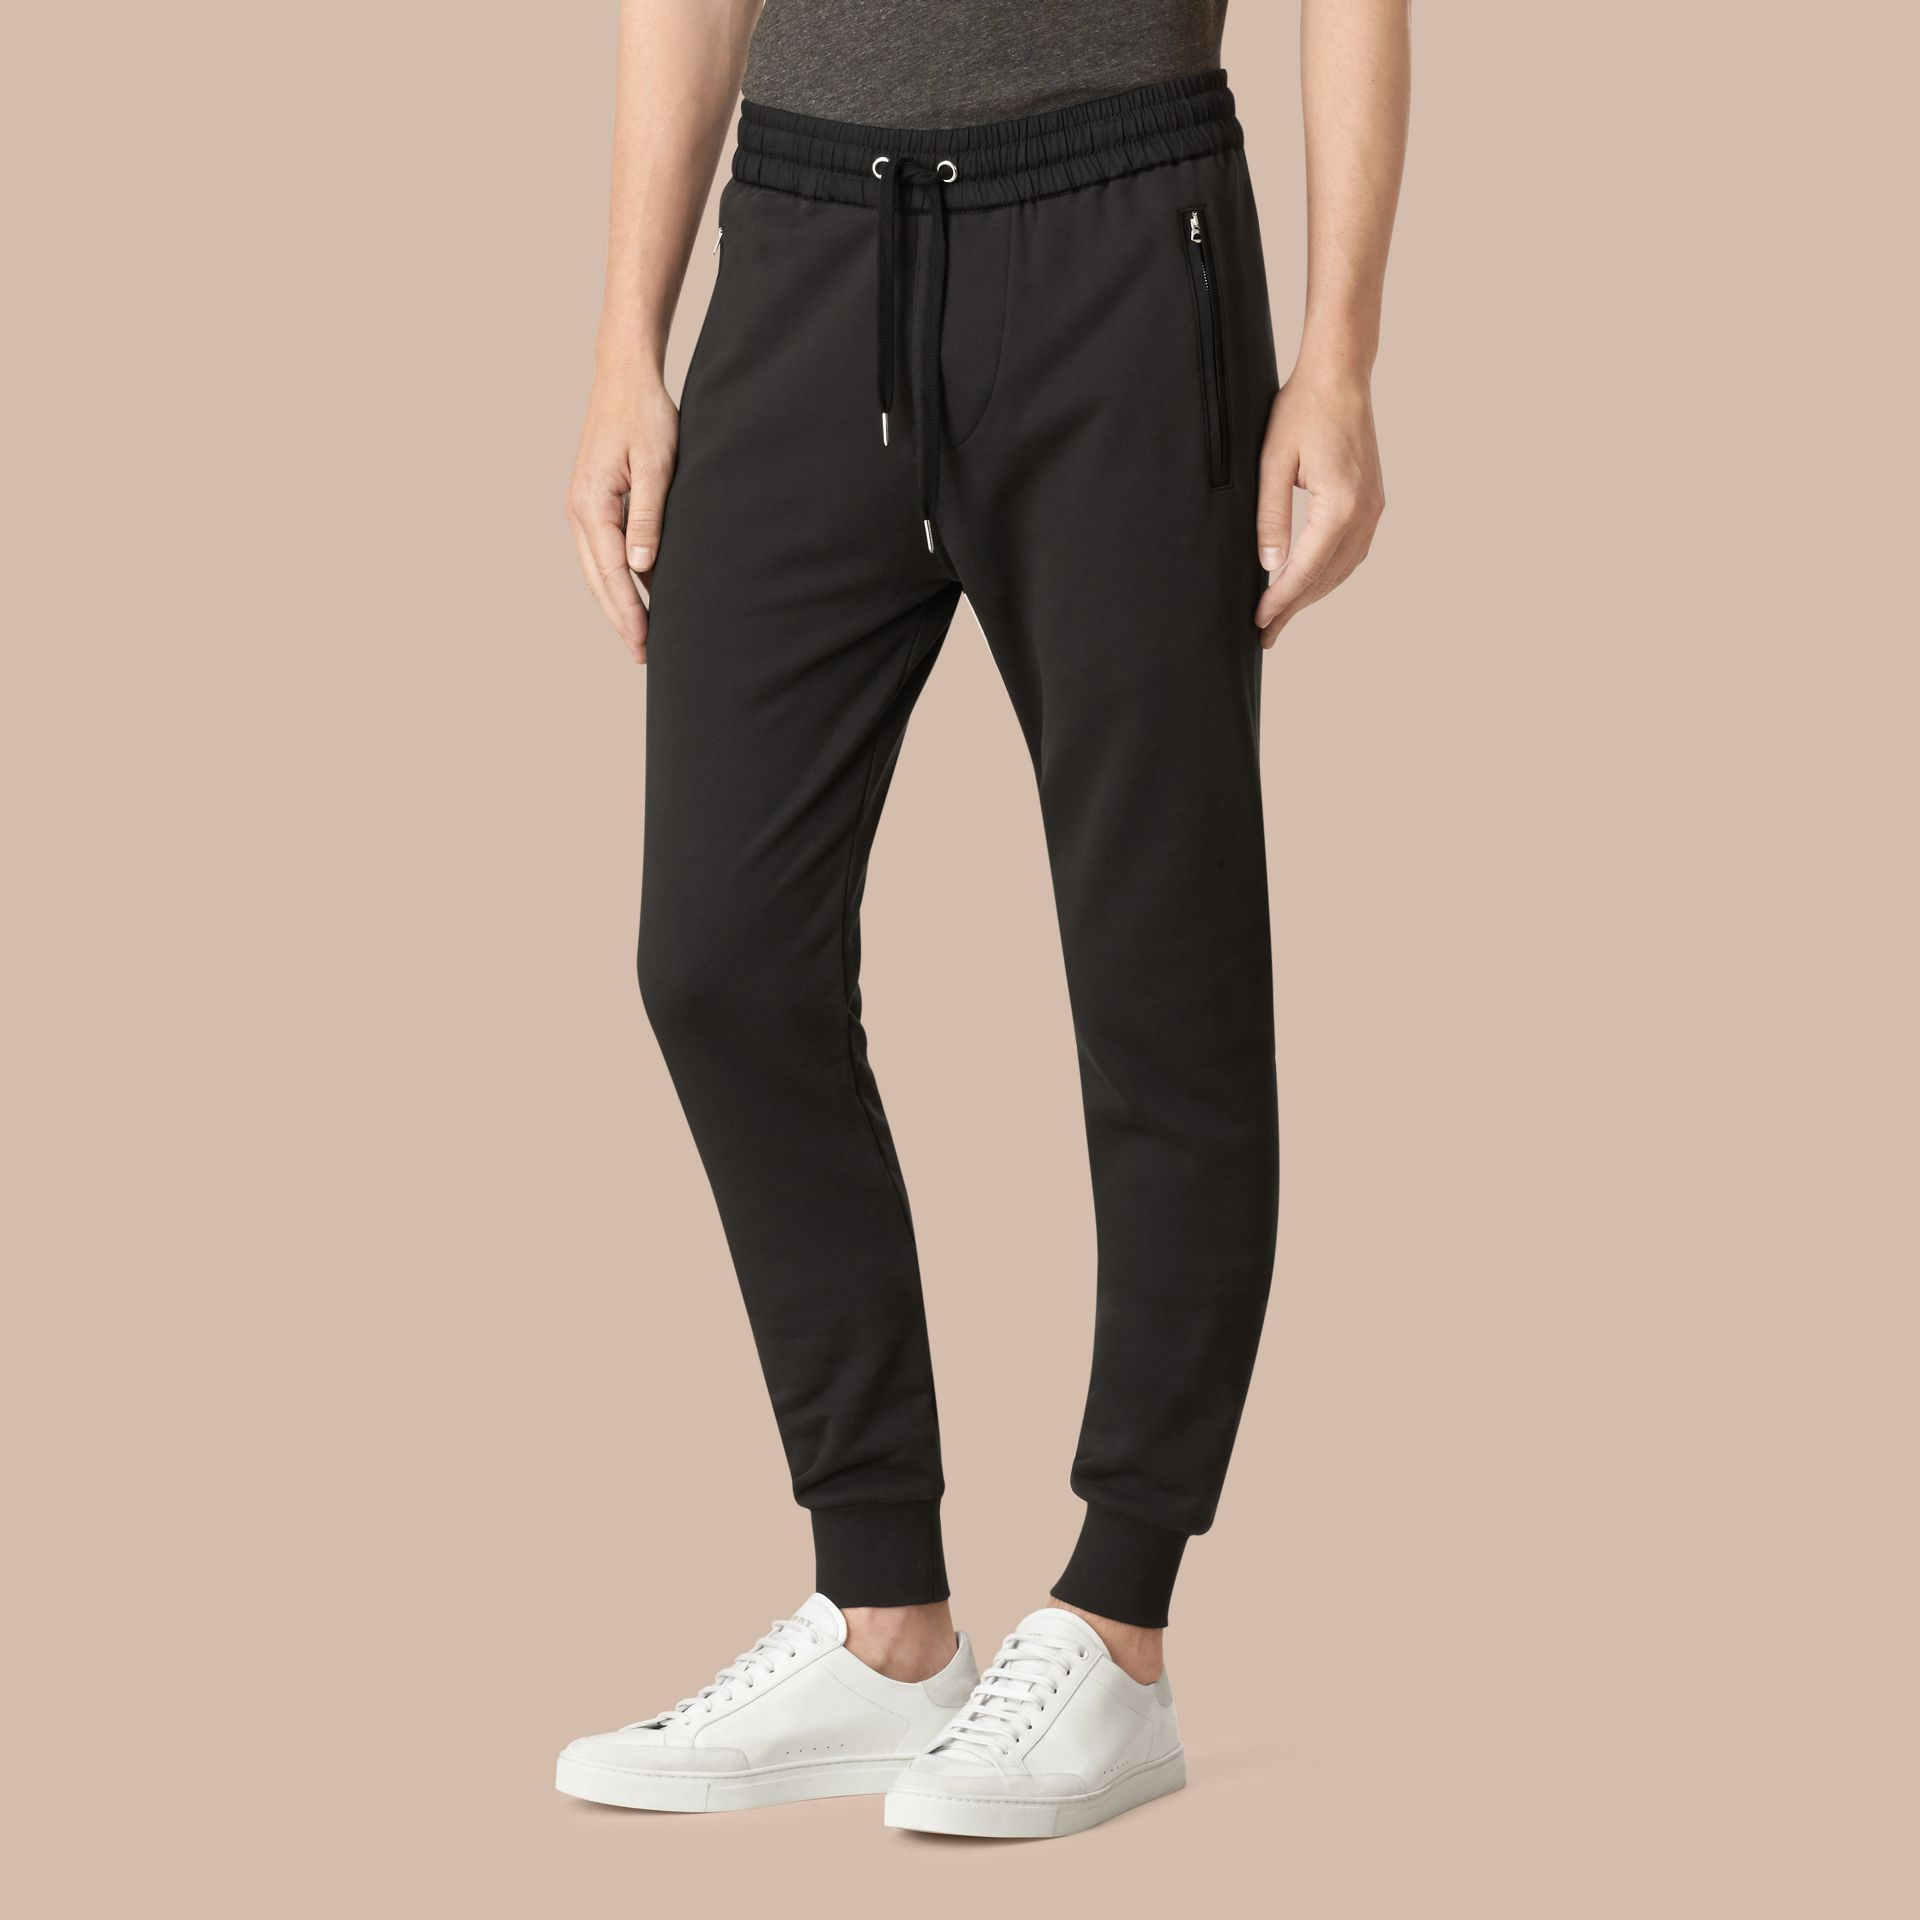 Black Cotton Sweat pants Black - gallery image 4